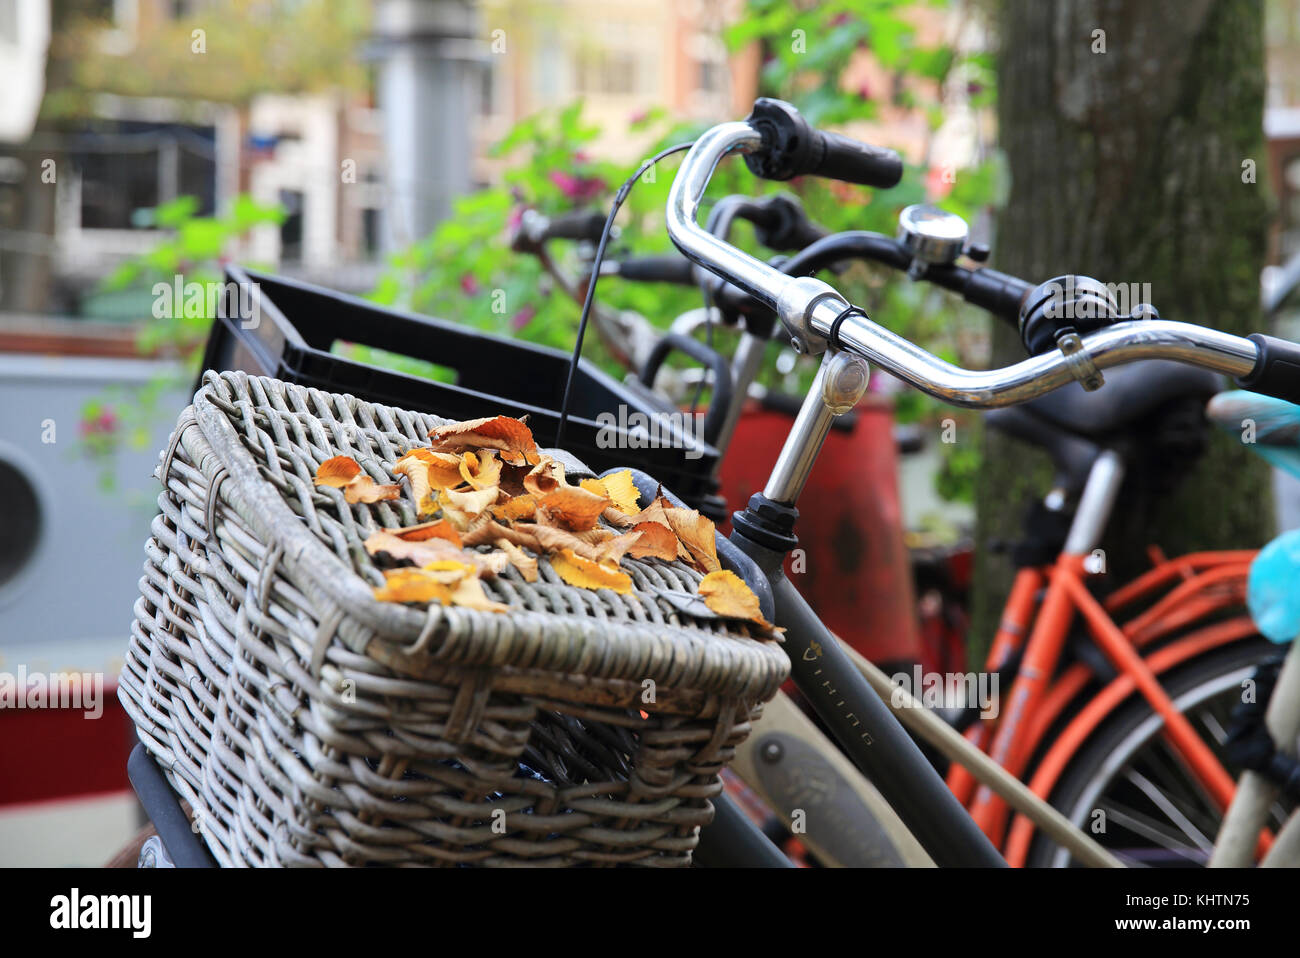 Bicycles by the Prinsengracht canal, in Autumn, in Amsterdam, the Netherlands - Stock Image